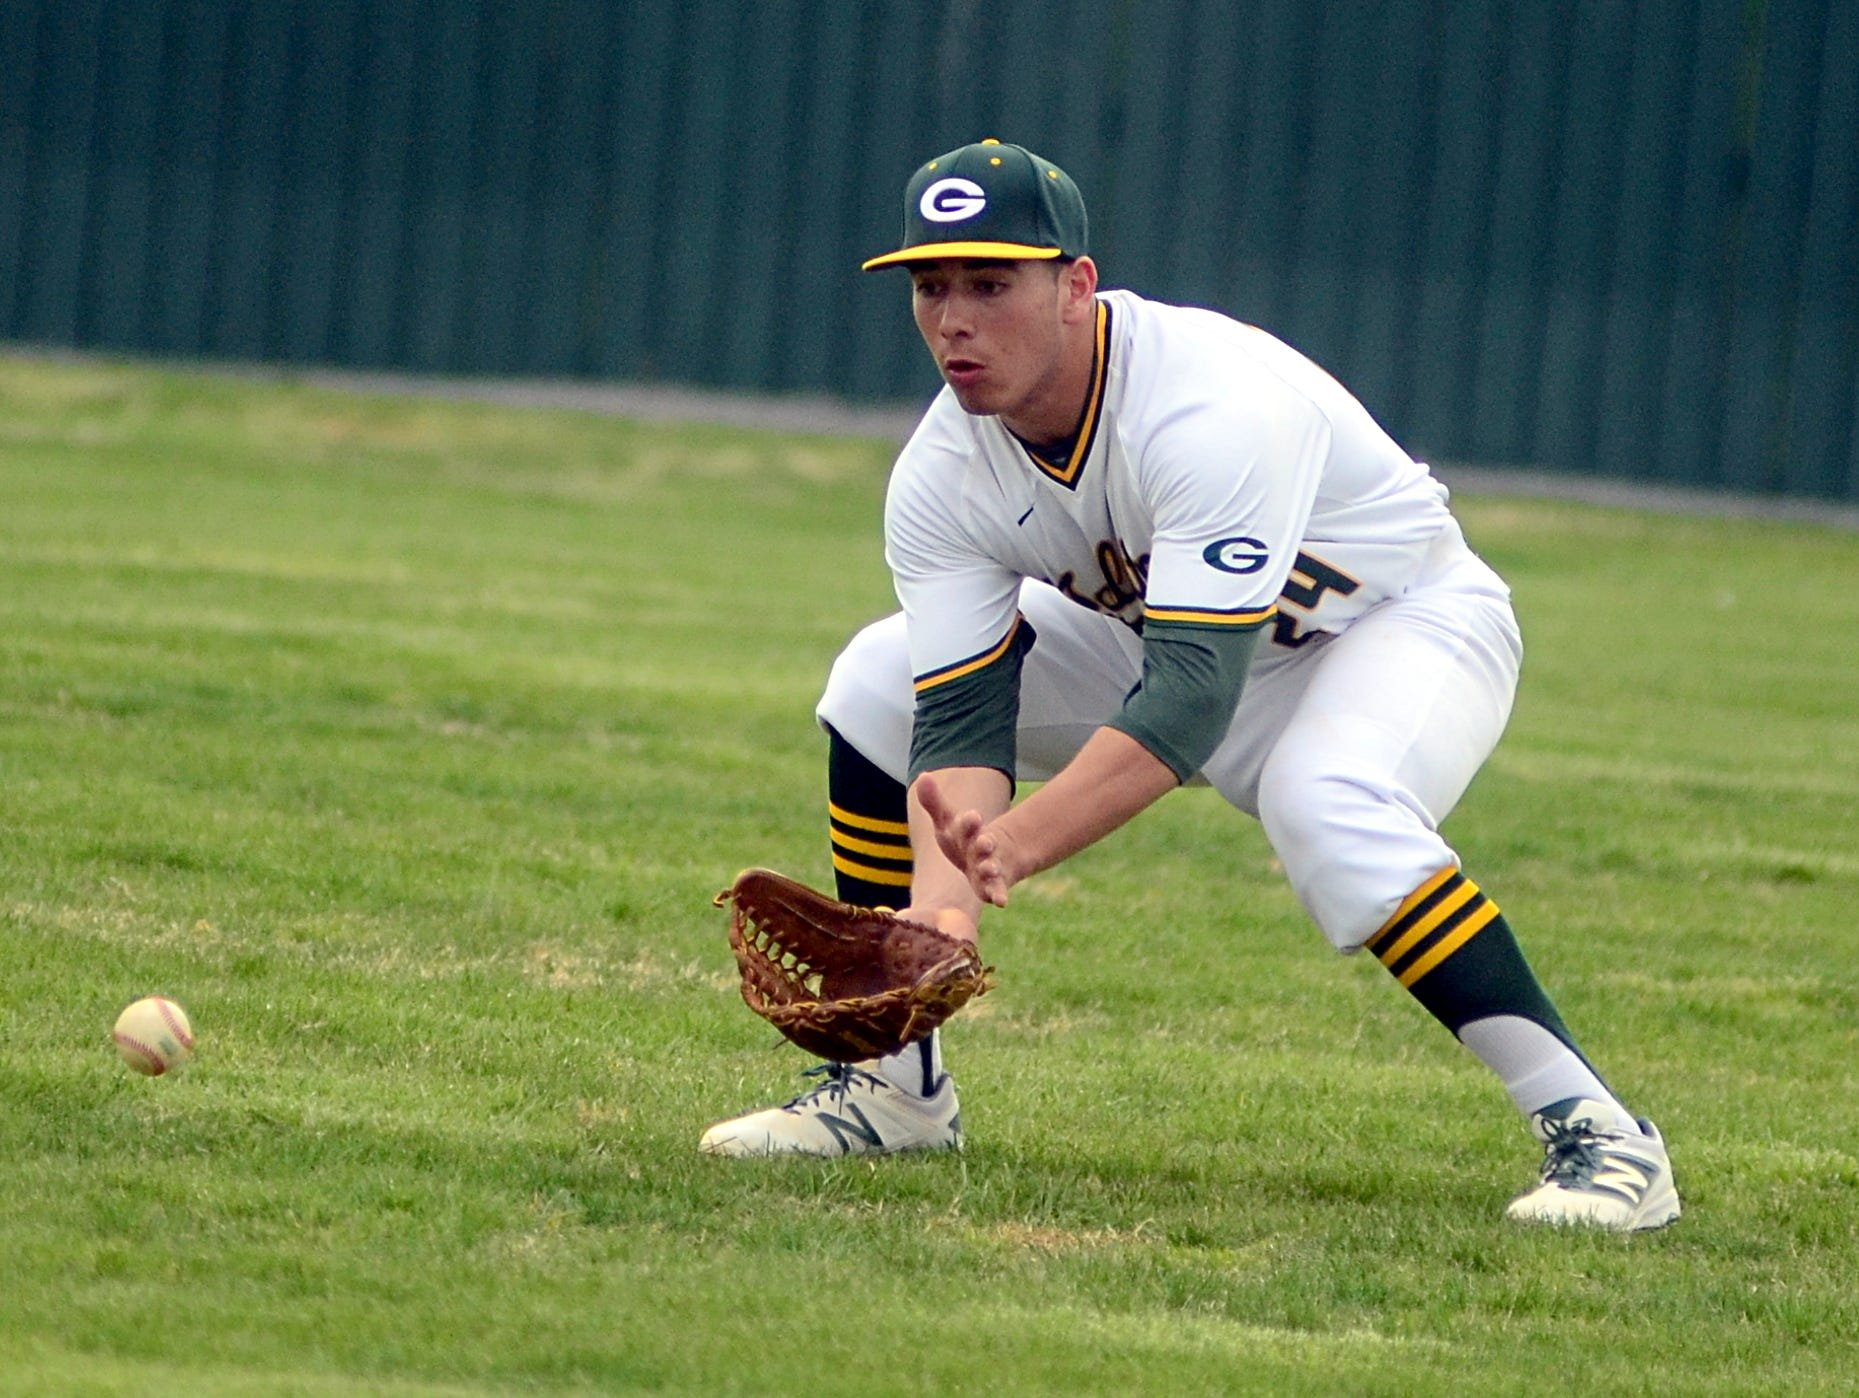 Gallatin High senior Carlos Hernandez fields a ball in rightfield during fourth-inning action.